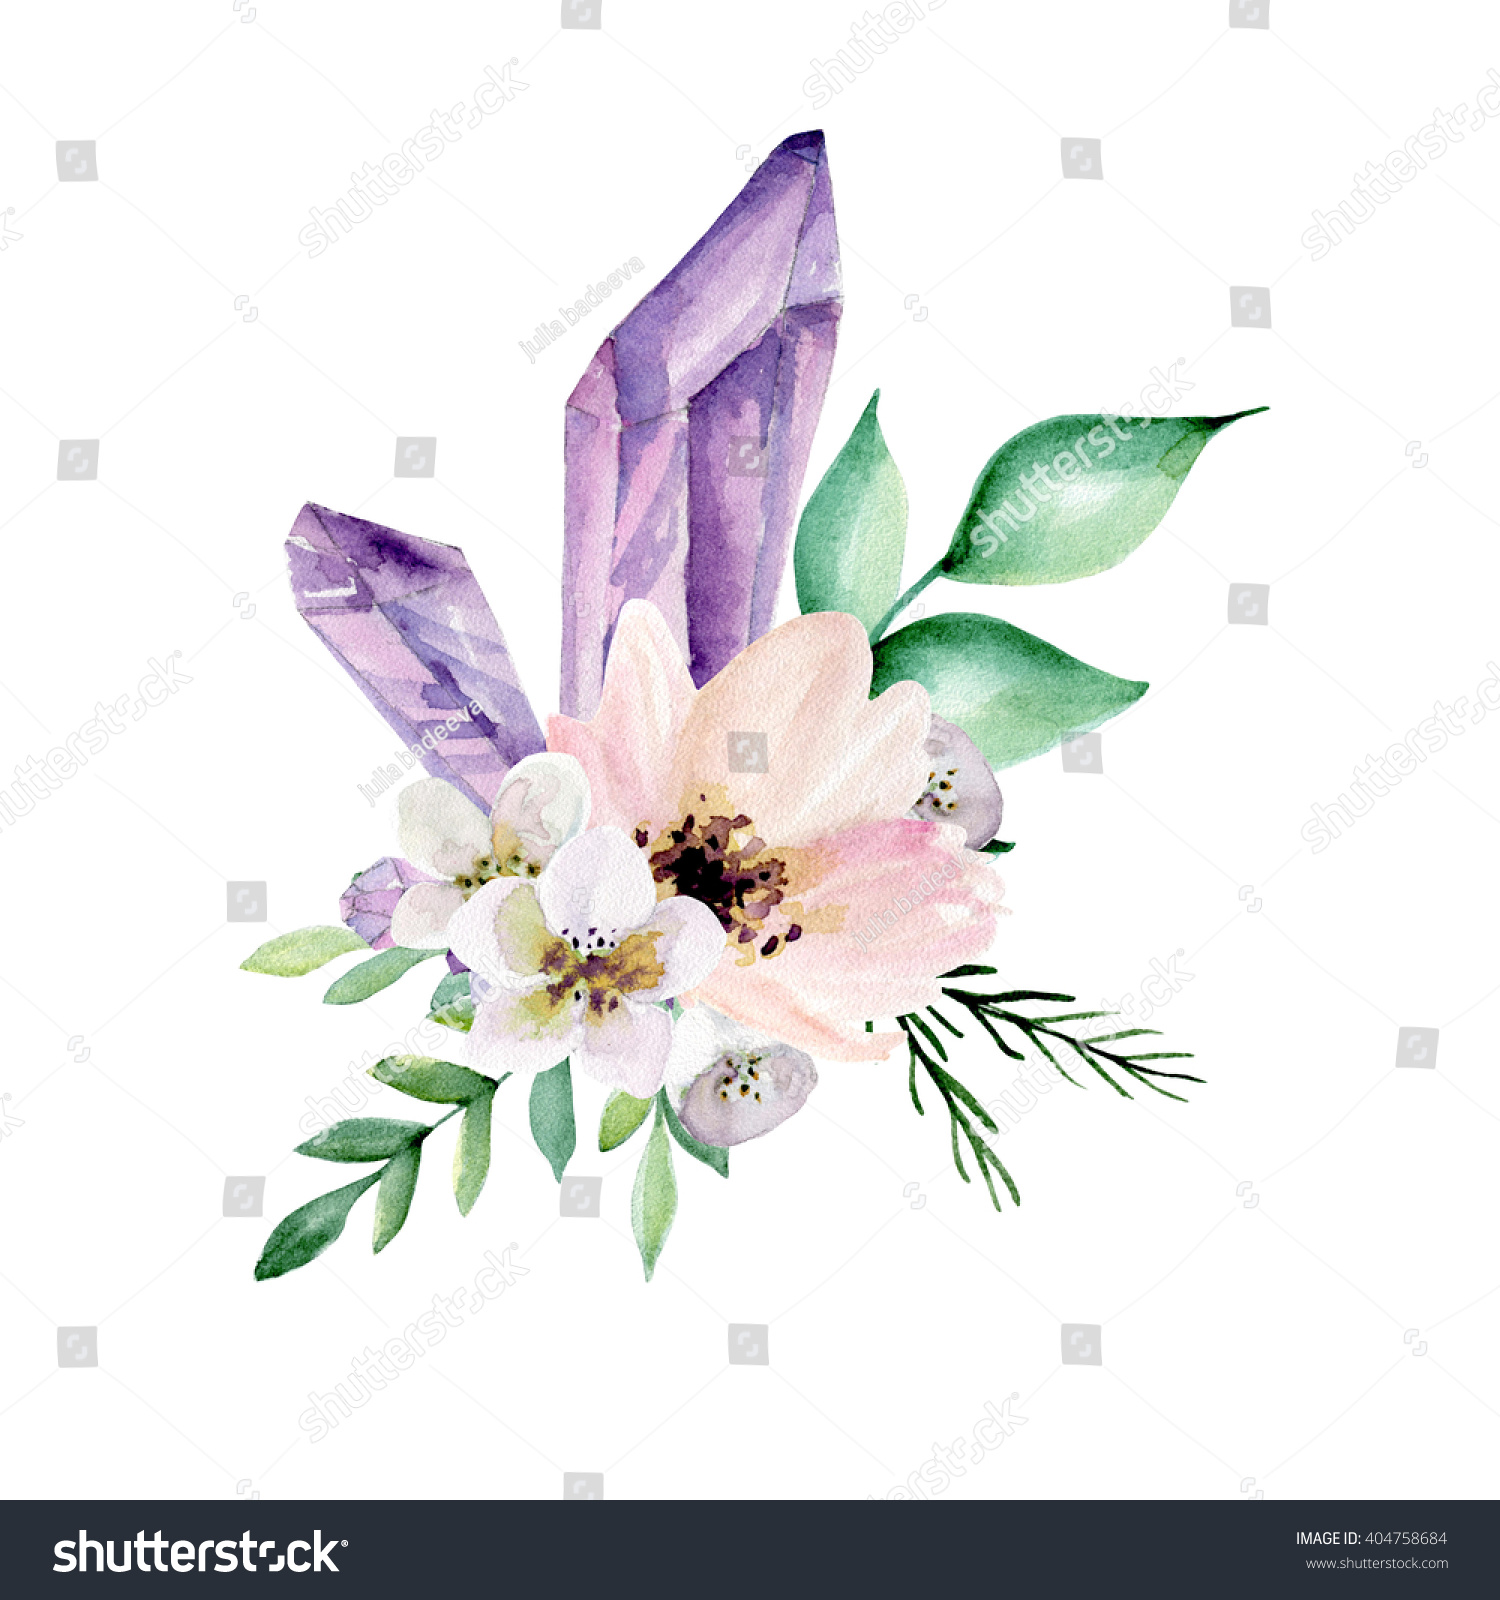 Alstroemeria Flower In English Bouquet Flowers Crystals Watercolor Hand Drawn Stock